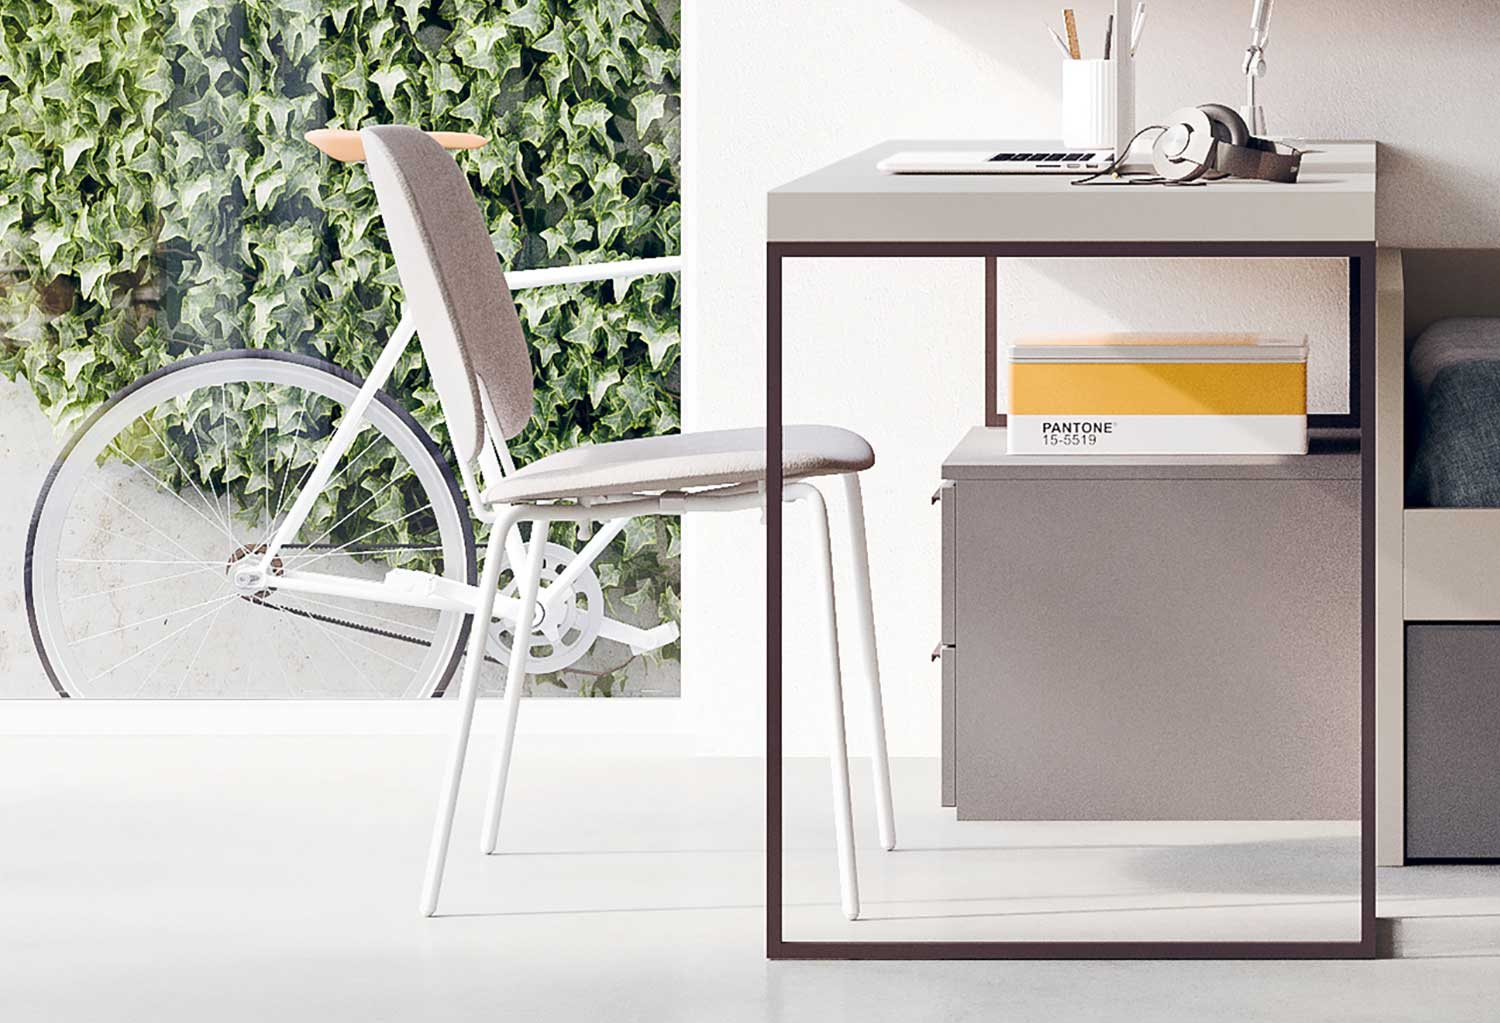 The white painted metal legs and light fabric of the seat give the chair a modern scandi look